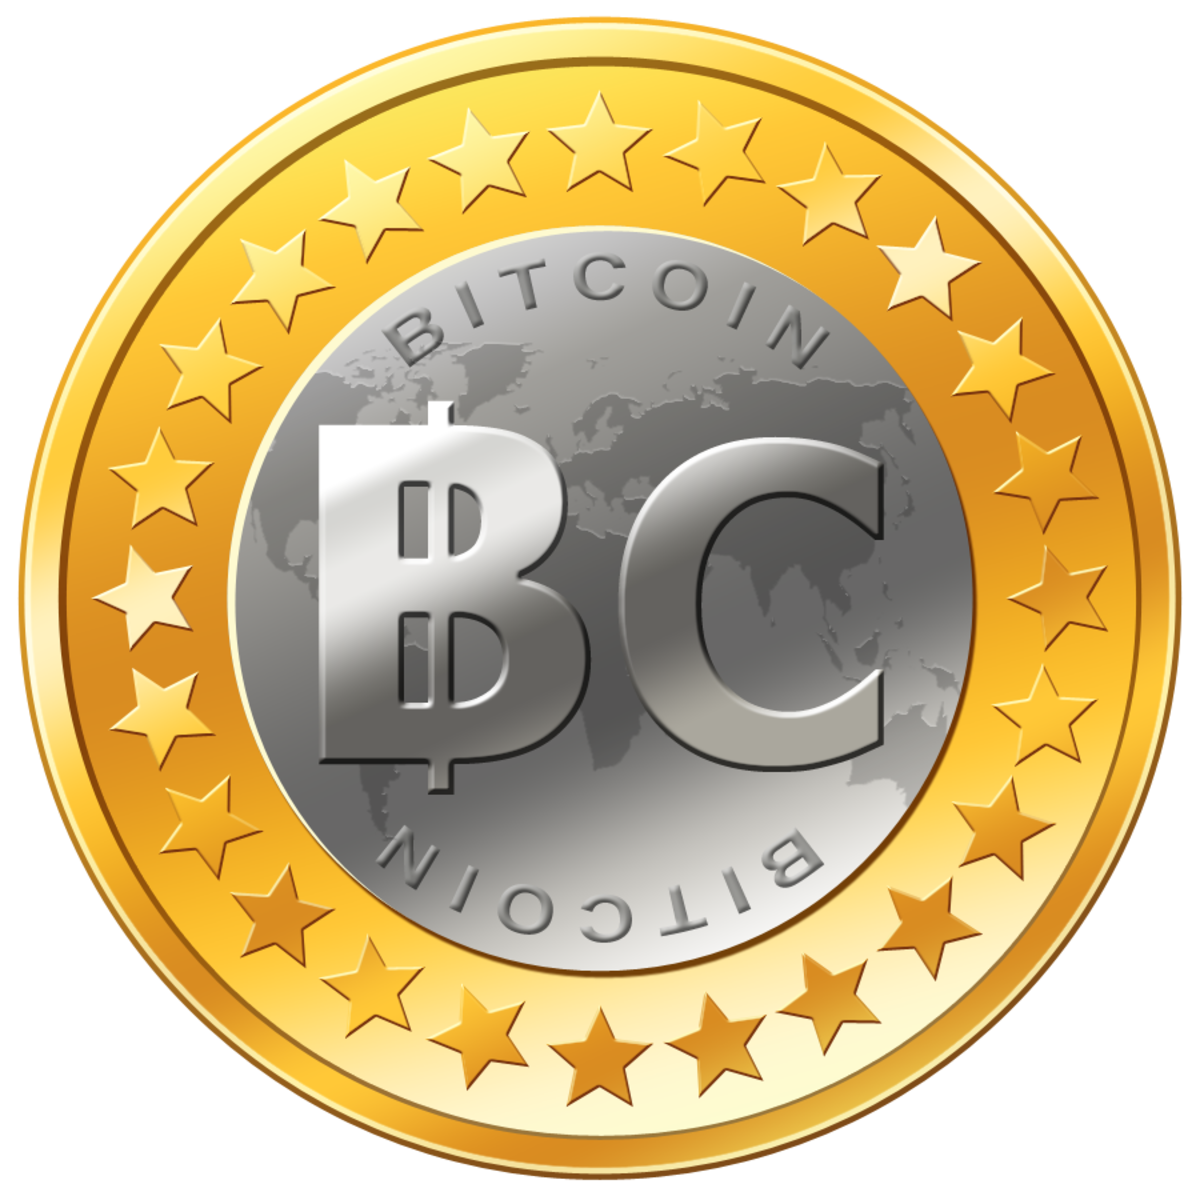 One of many Bitcoin images.